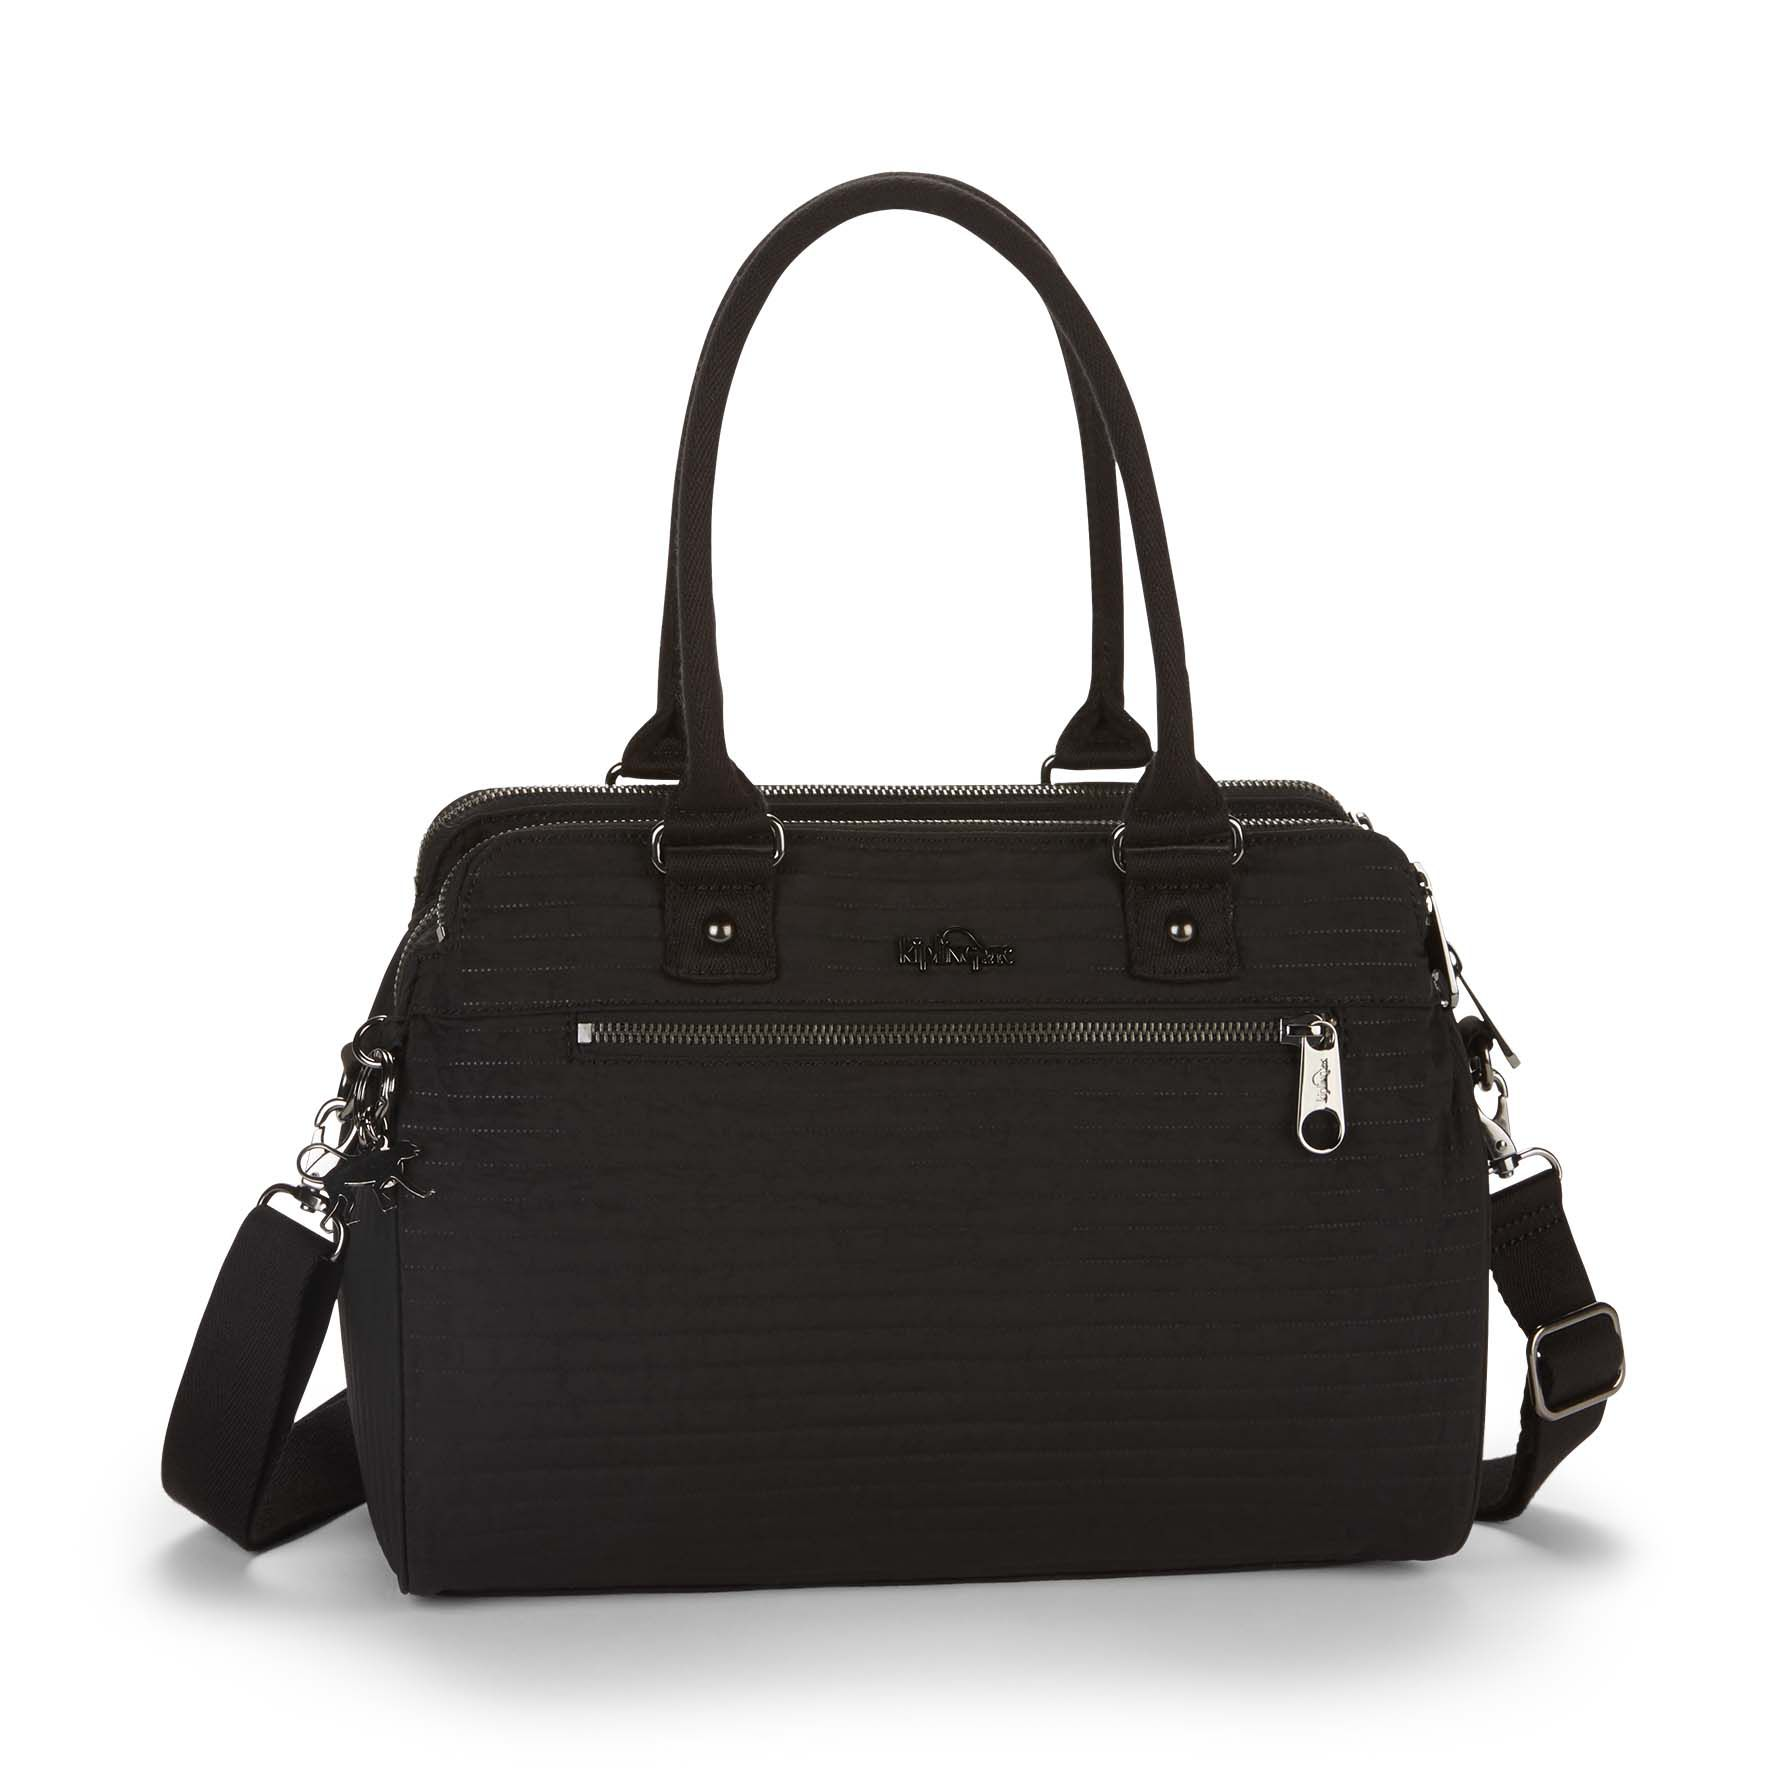 Kipling Sunbeam tote bag Black